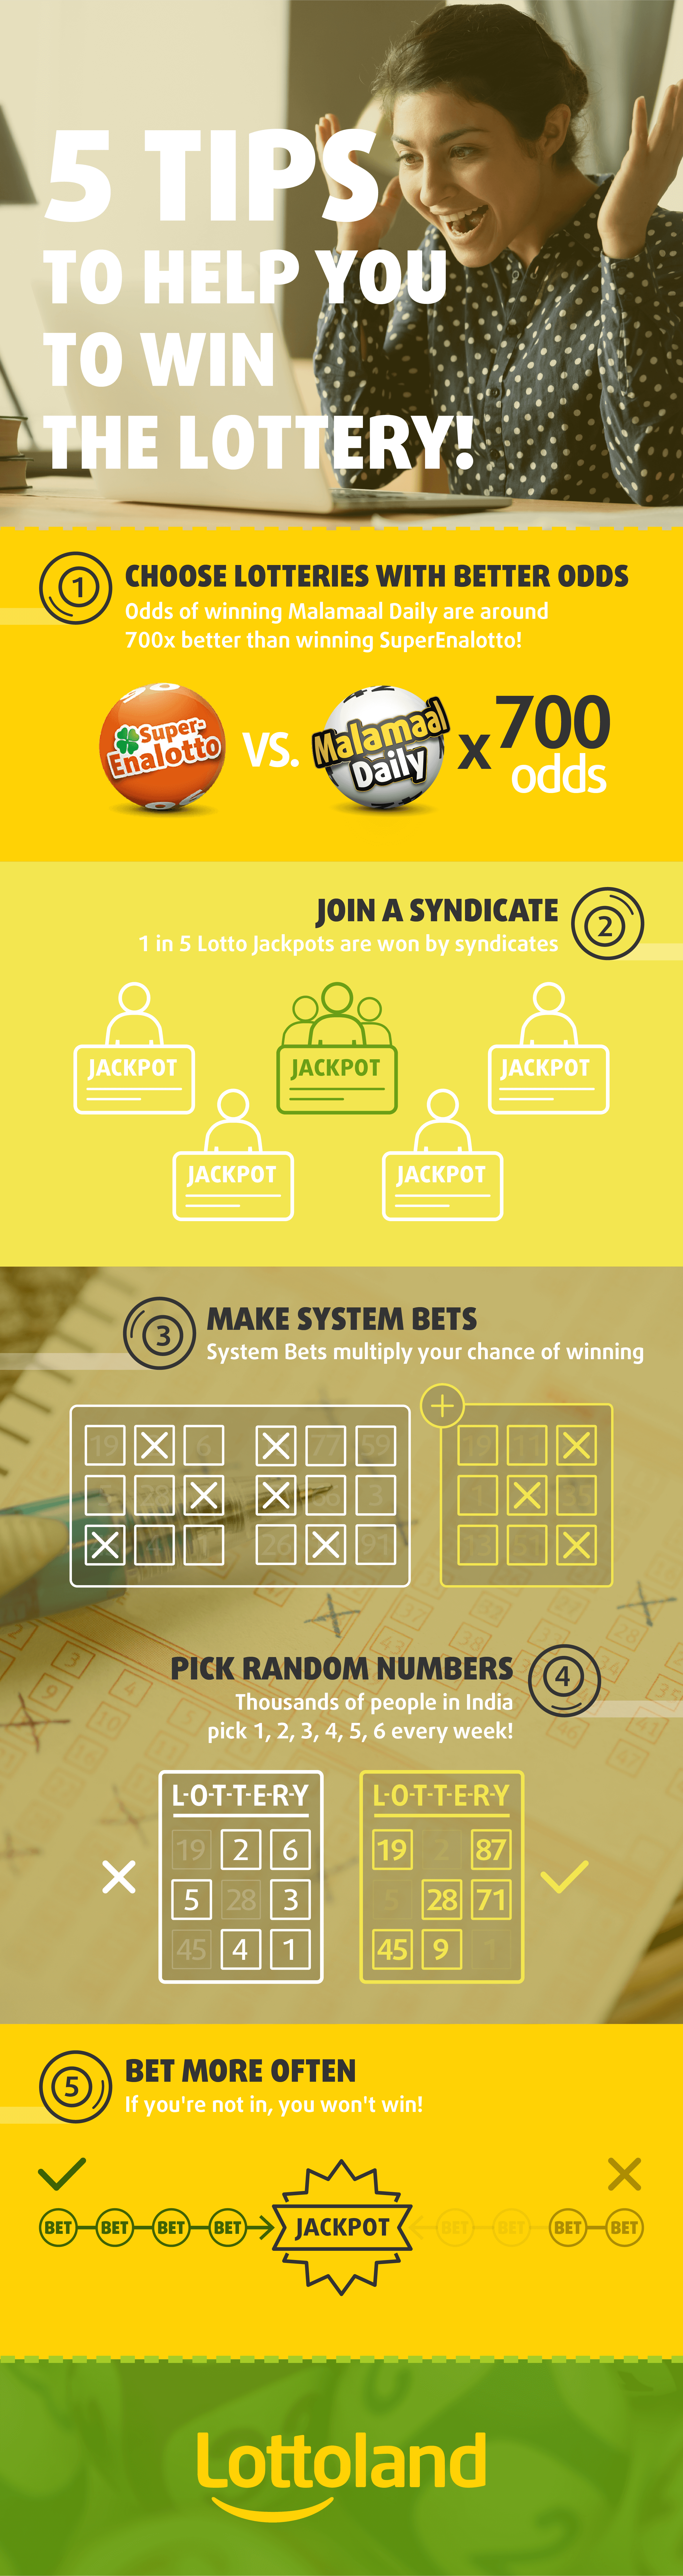 Infographic with 5 tips to help you to win the lottery